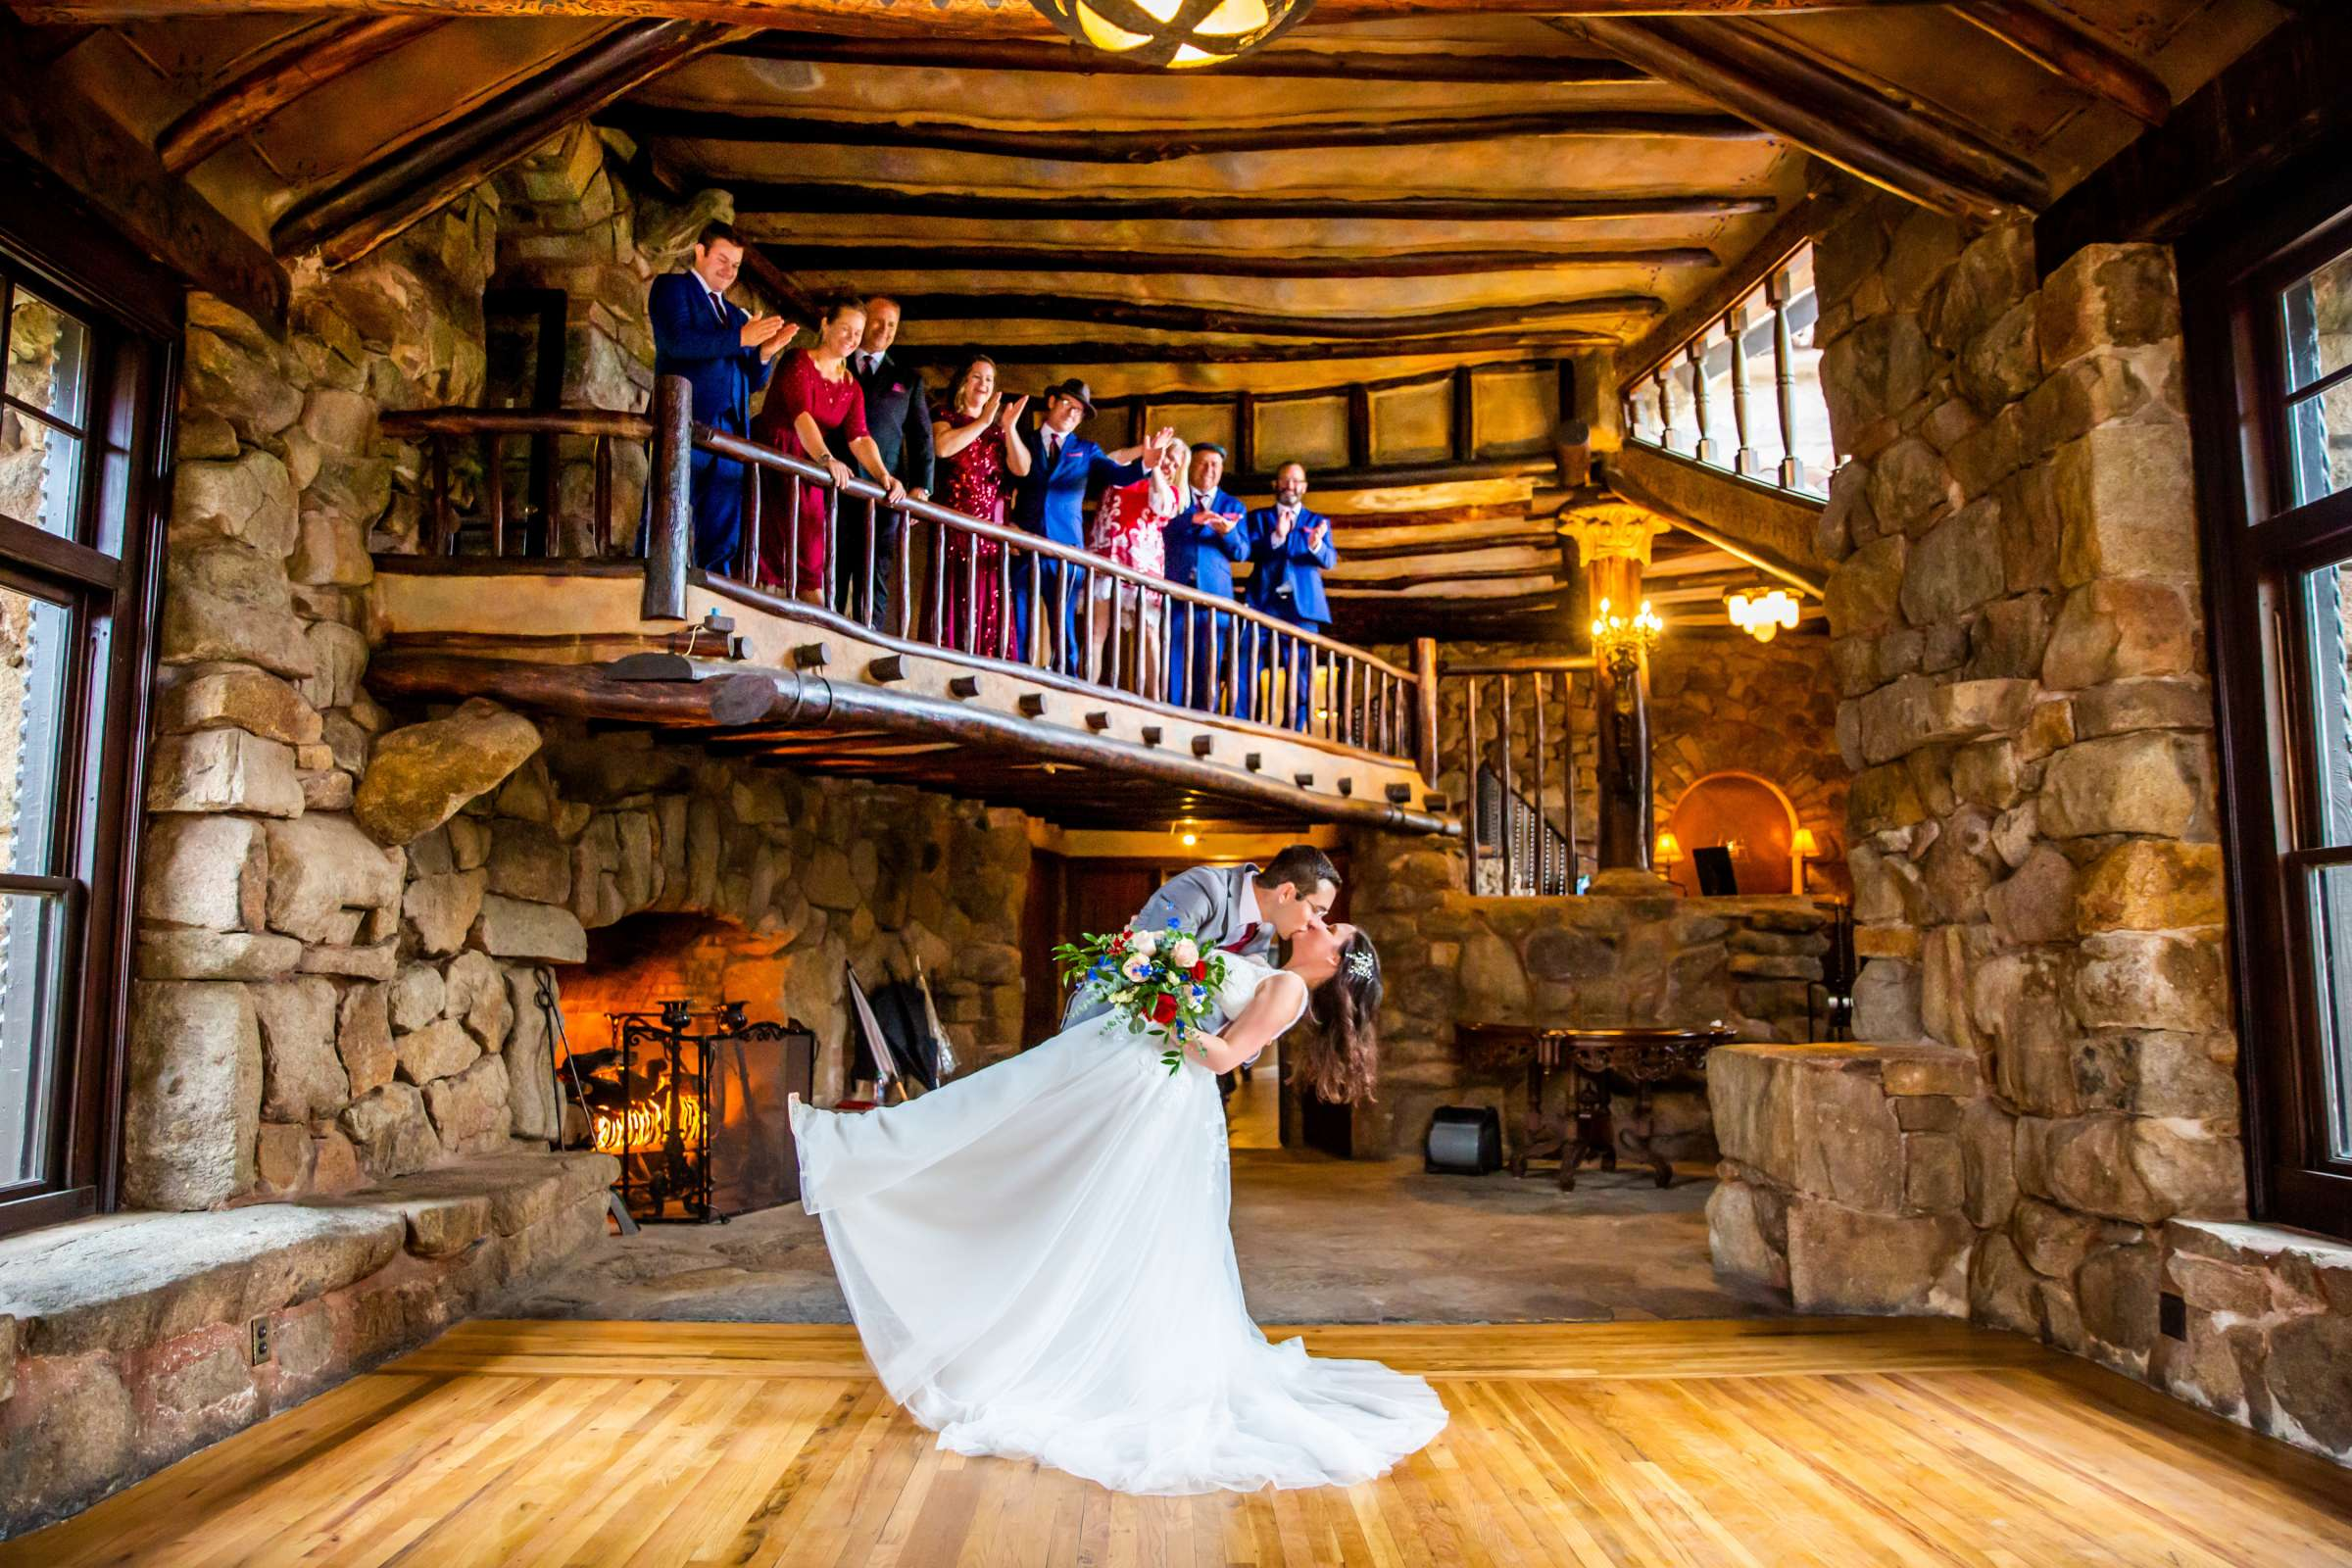 Mt Woodson Castle Wedding, Valerie and Ian Wedding Photo #13 by True Photography